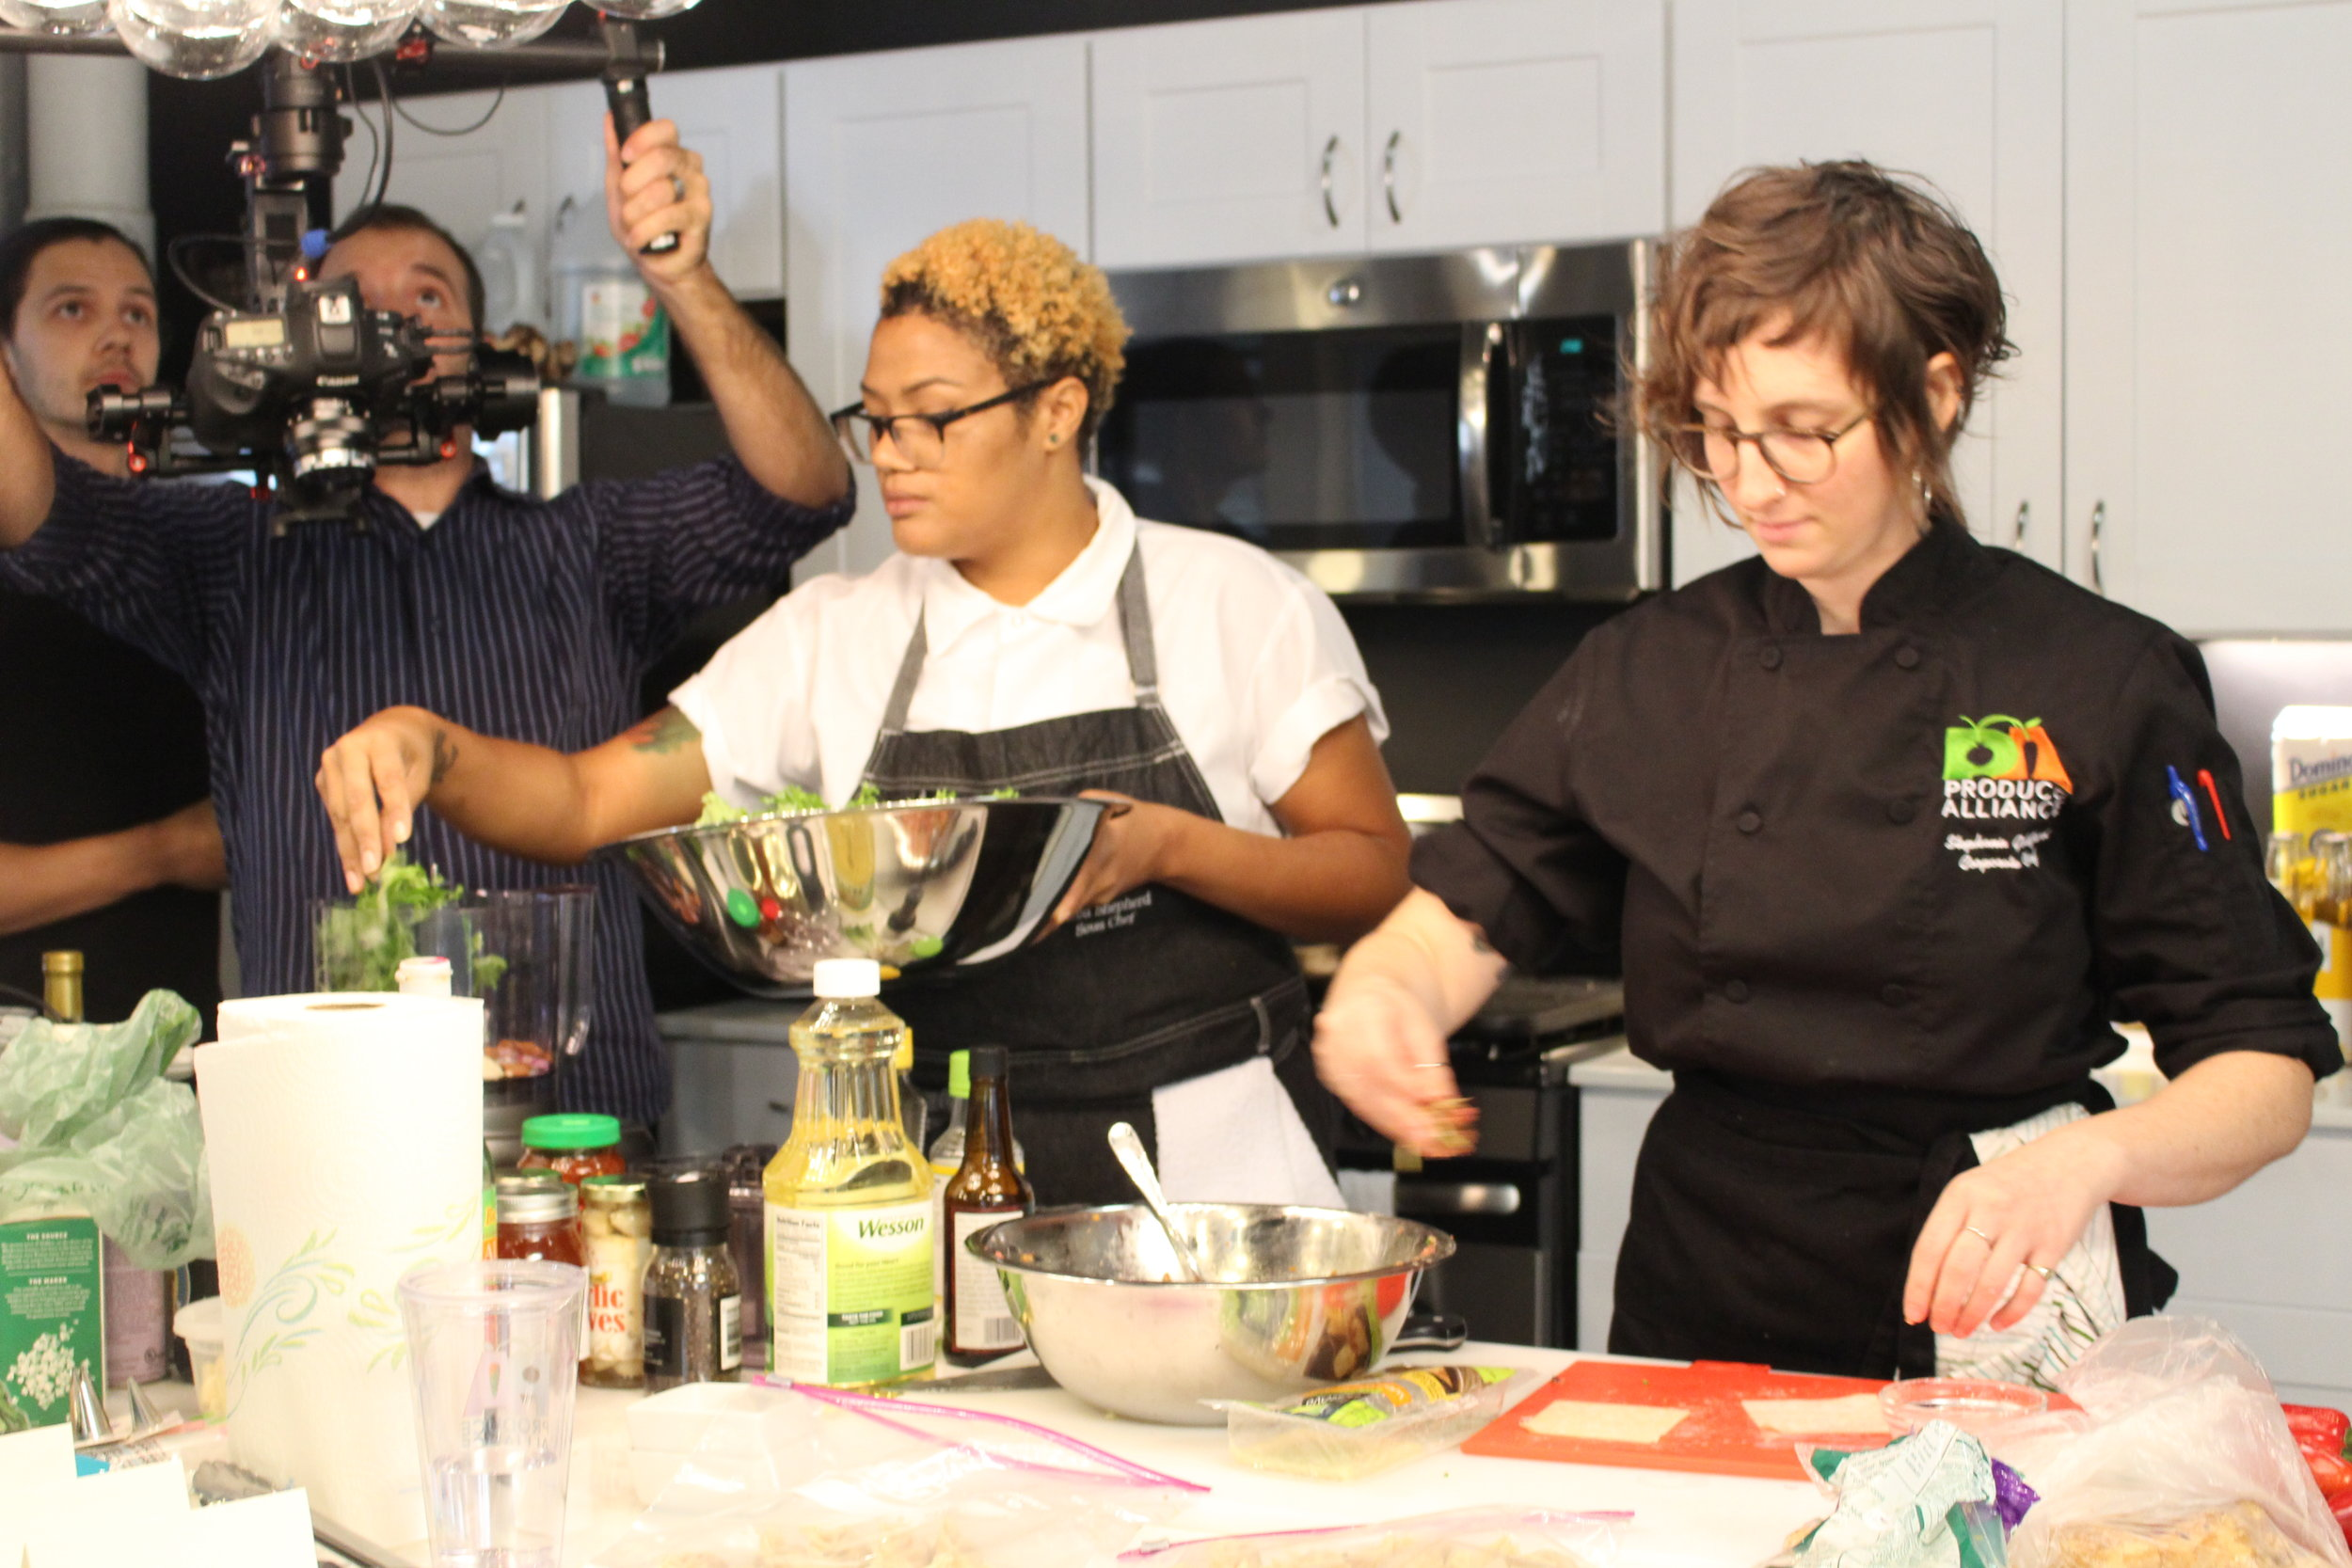 PA Corporate Chef Stephanie Goldfarb (Right) & Chef Nariba Shepard (Left)